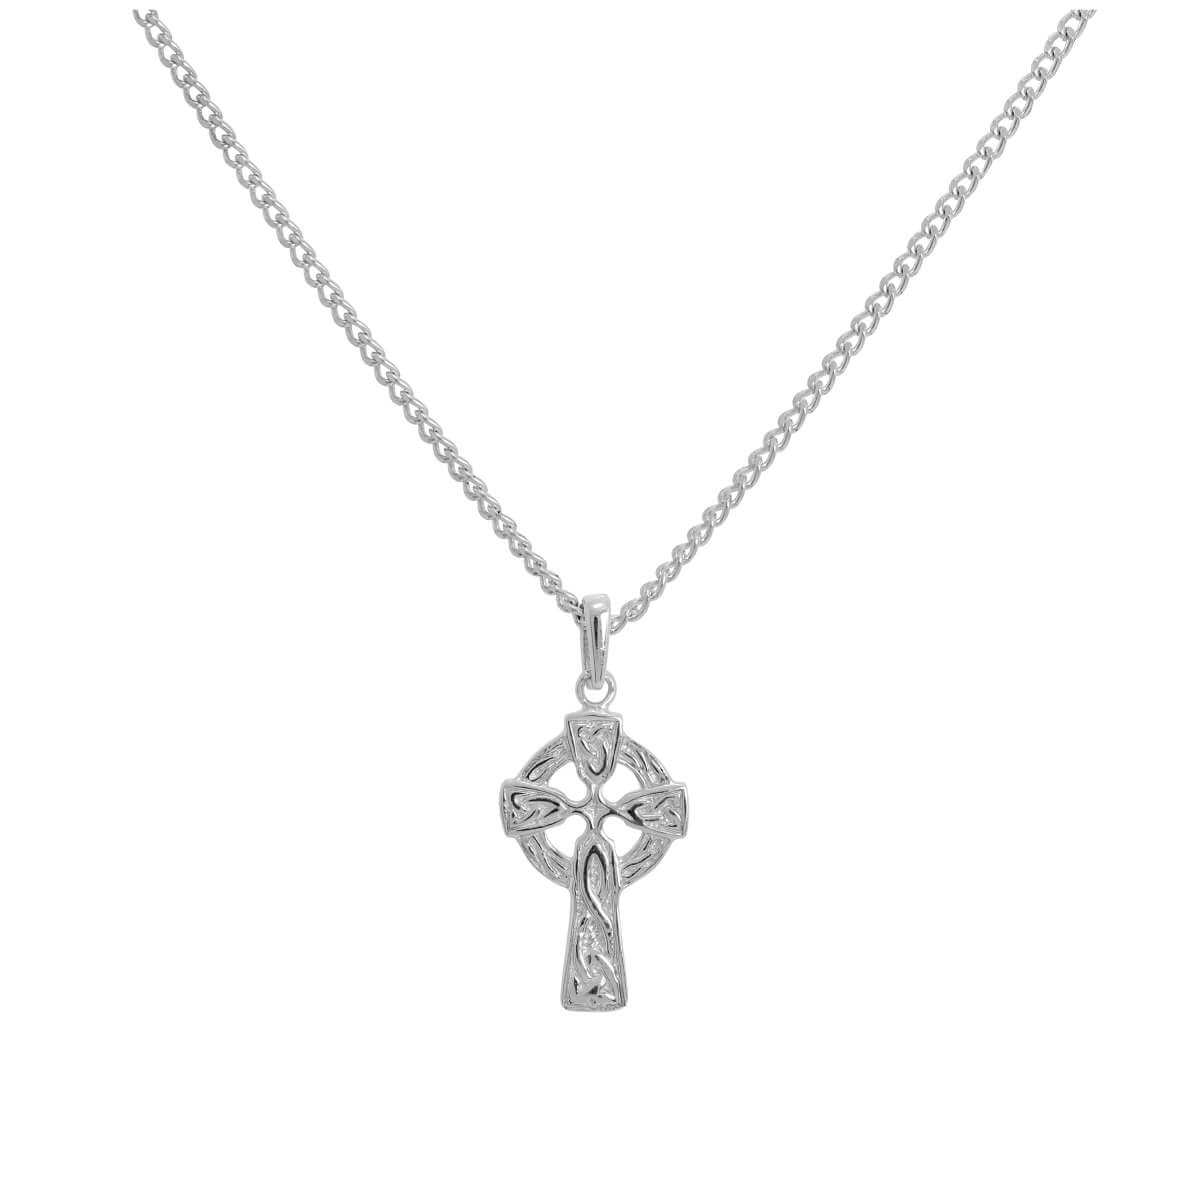 Small Sterling Silver Celtic Cross Pendant on Chain 16 - 24 Inches